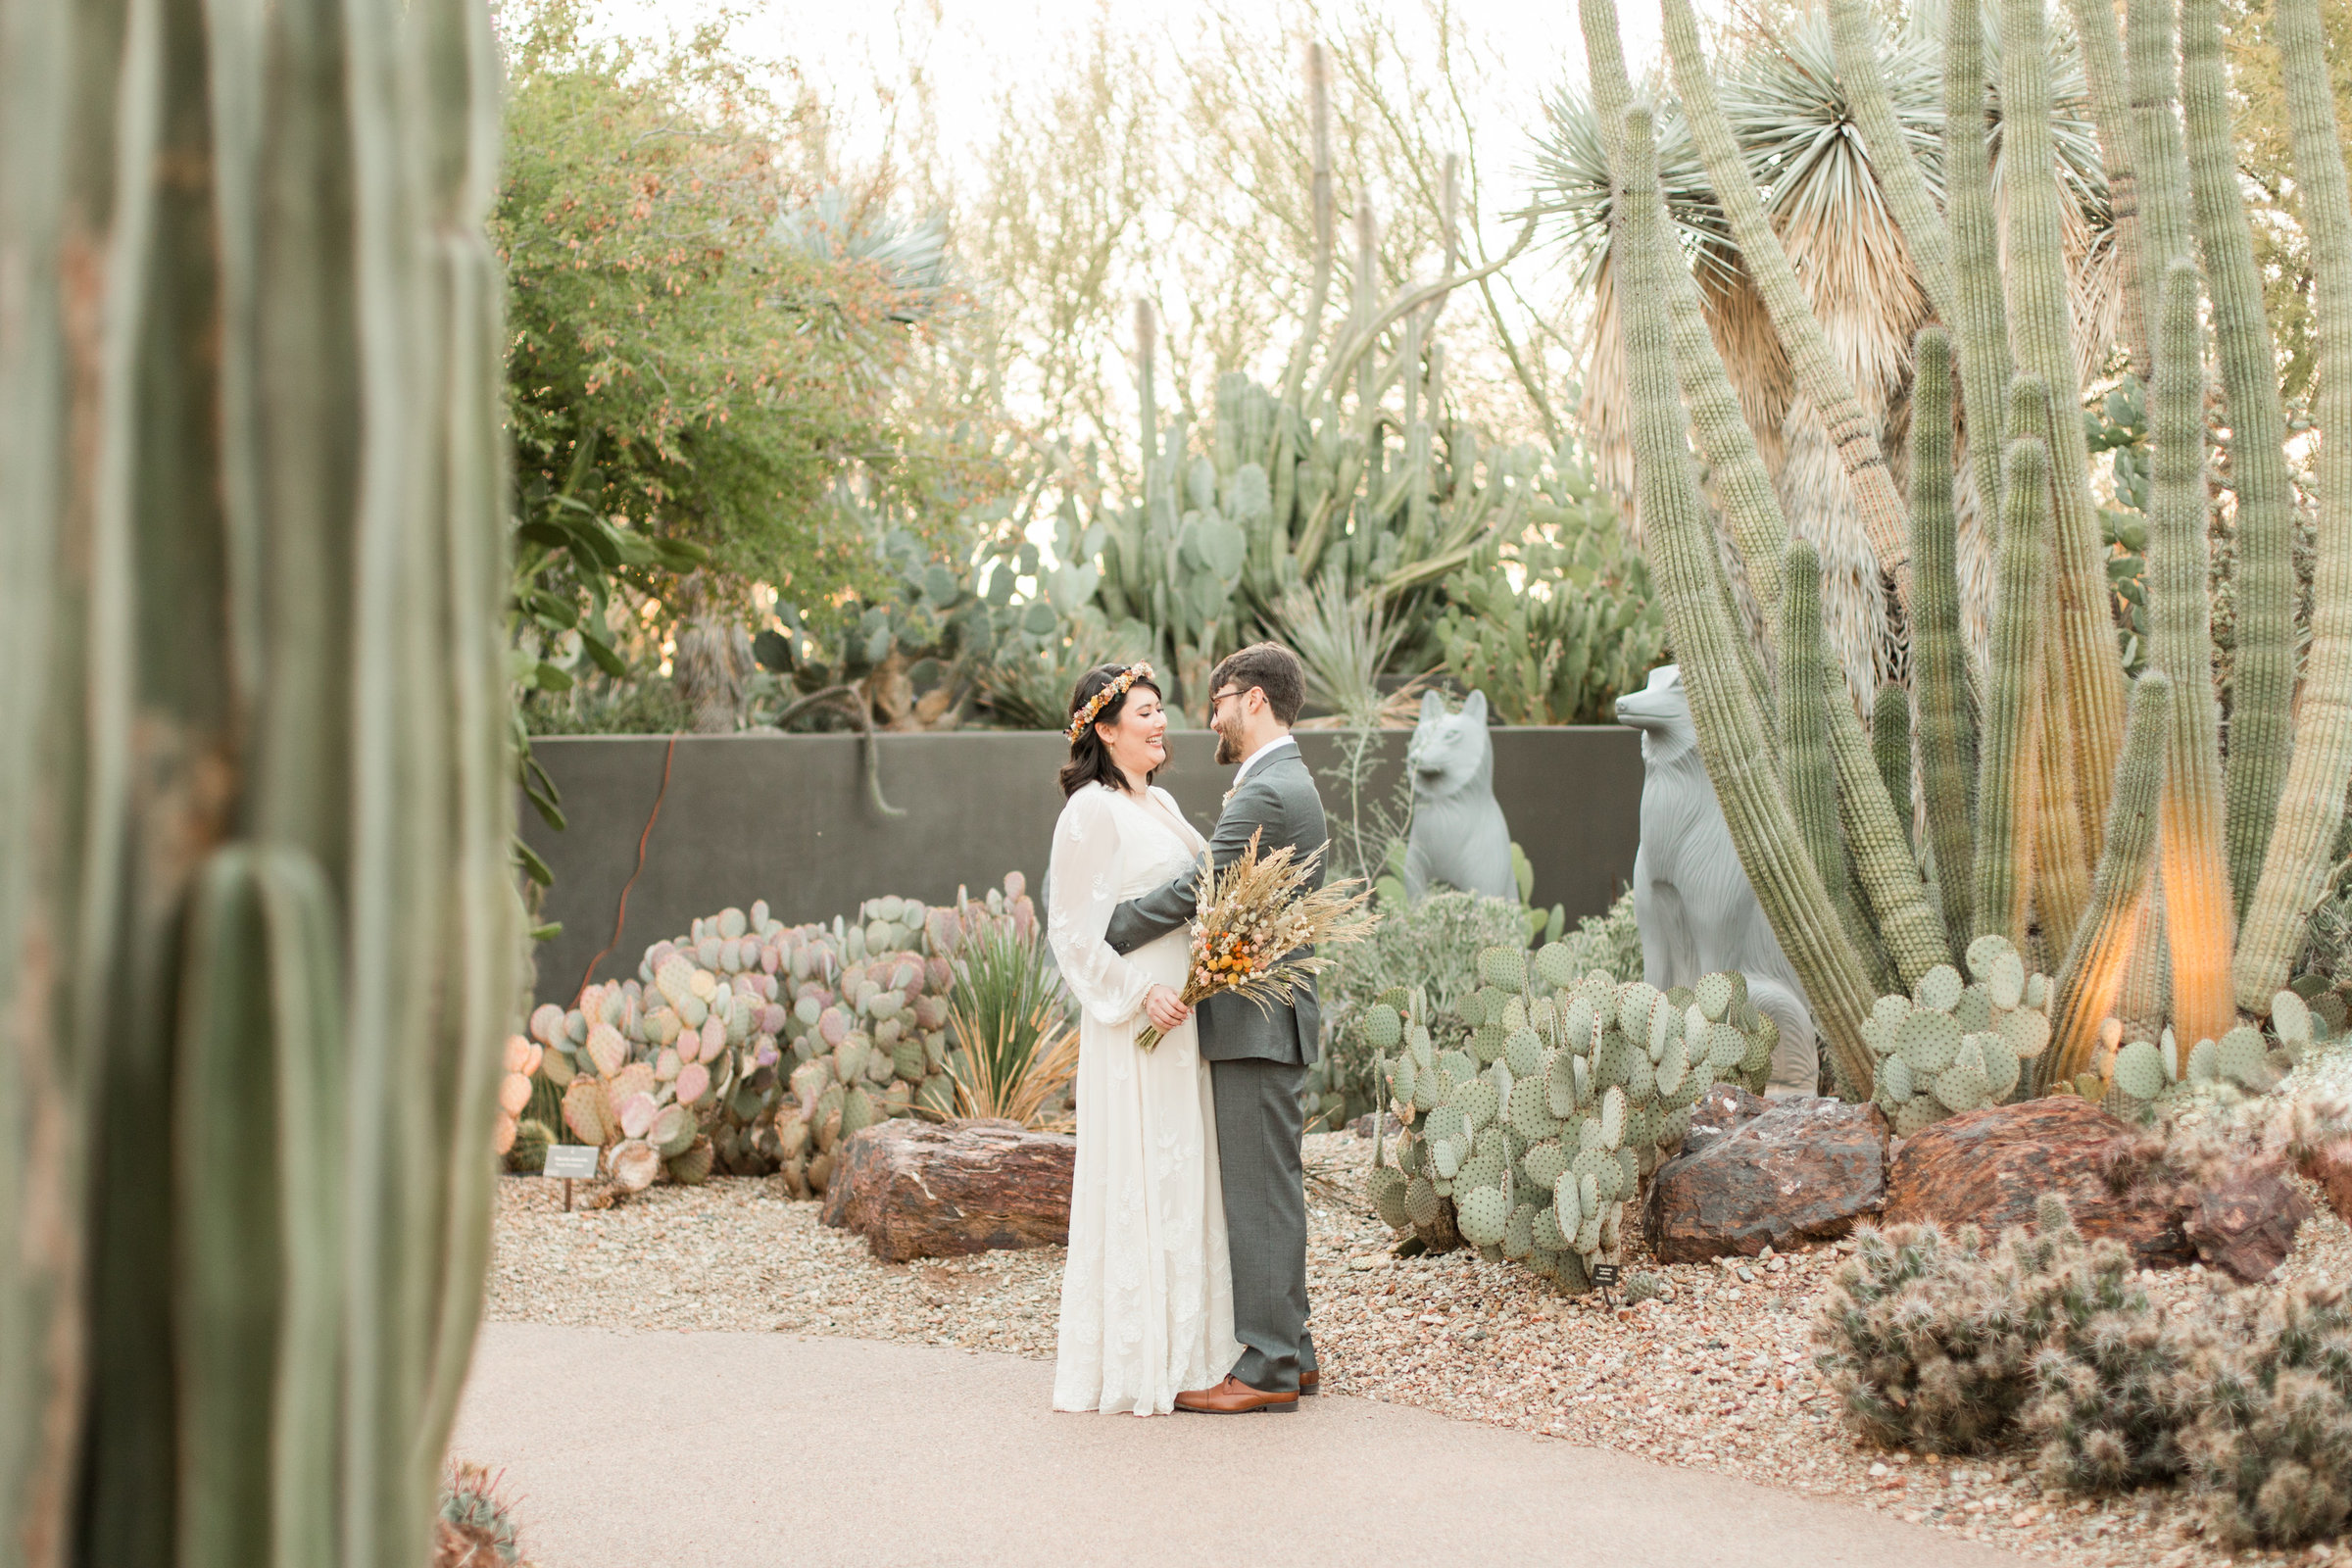 Bride and groom at their wedding at Desert Botanical Garden